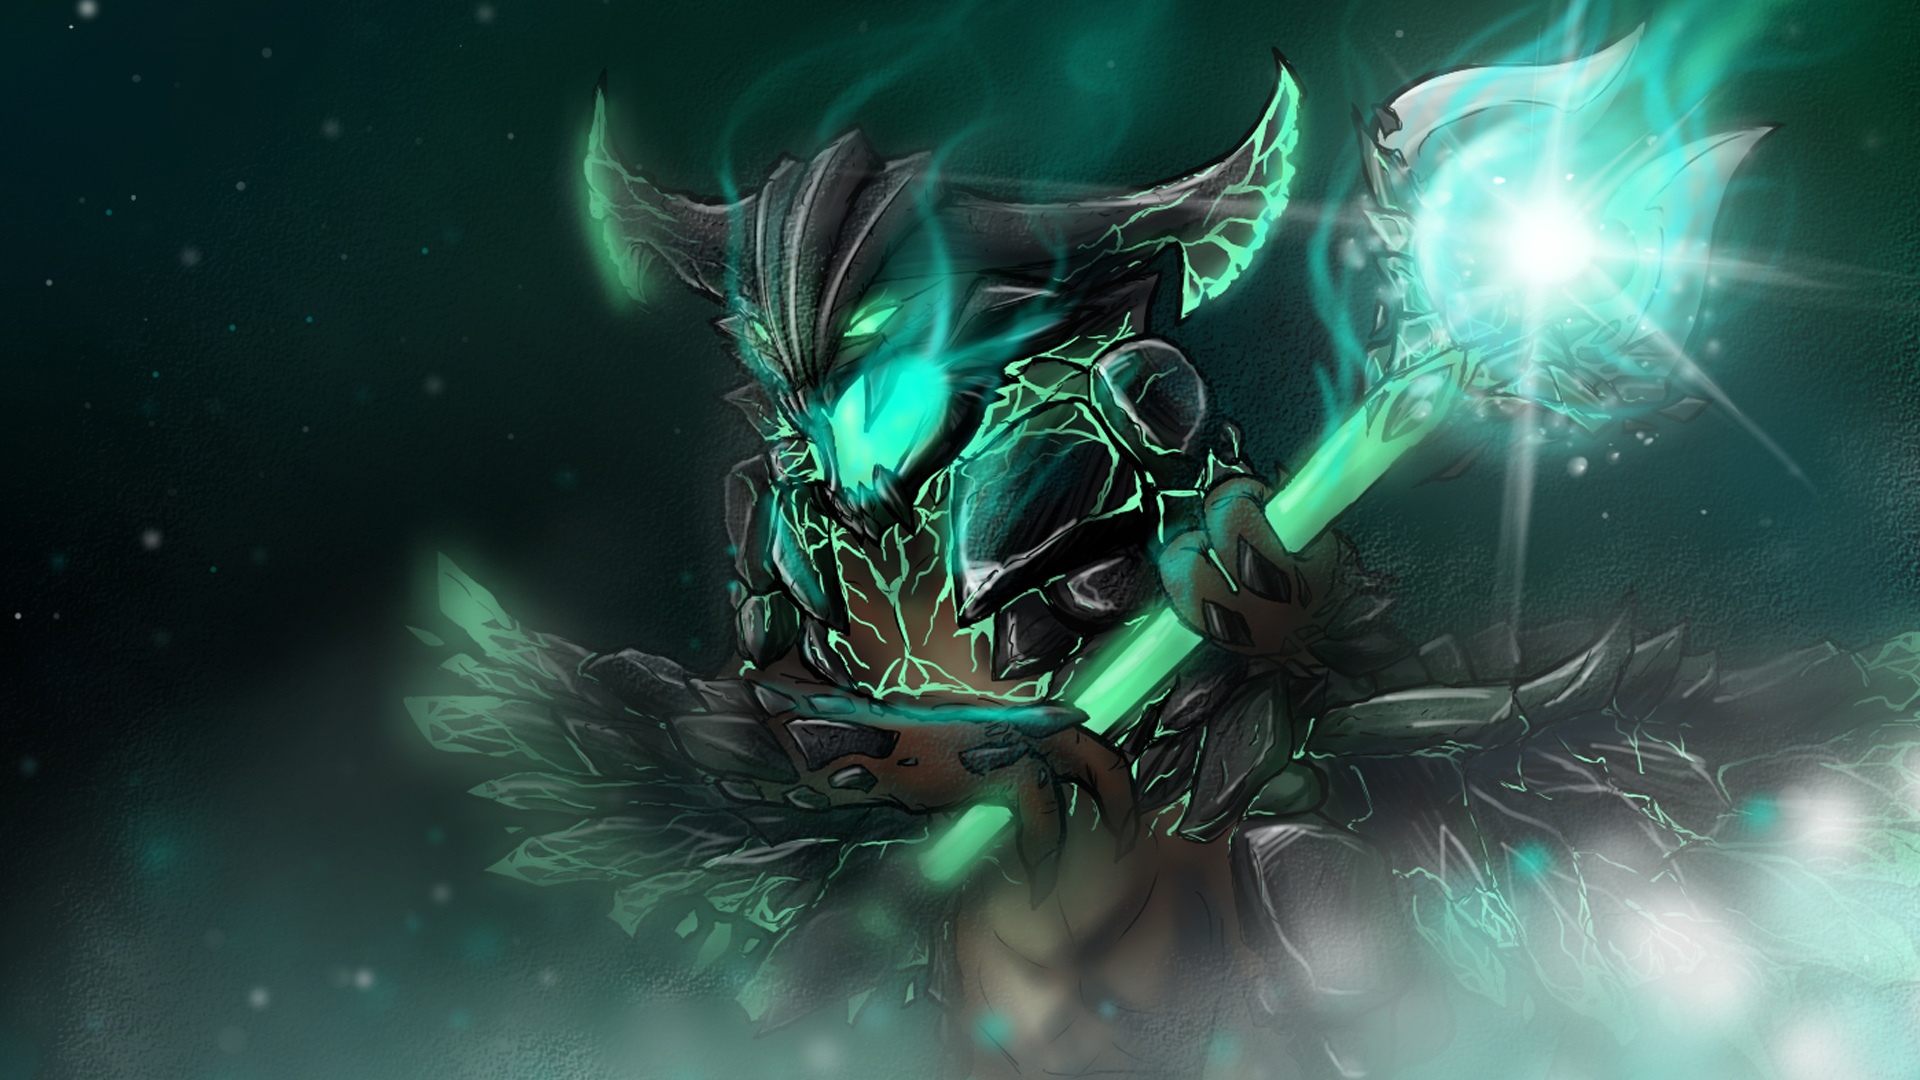 Outworld Devourer Dota 2 гайд